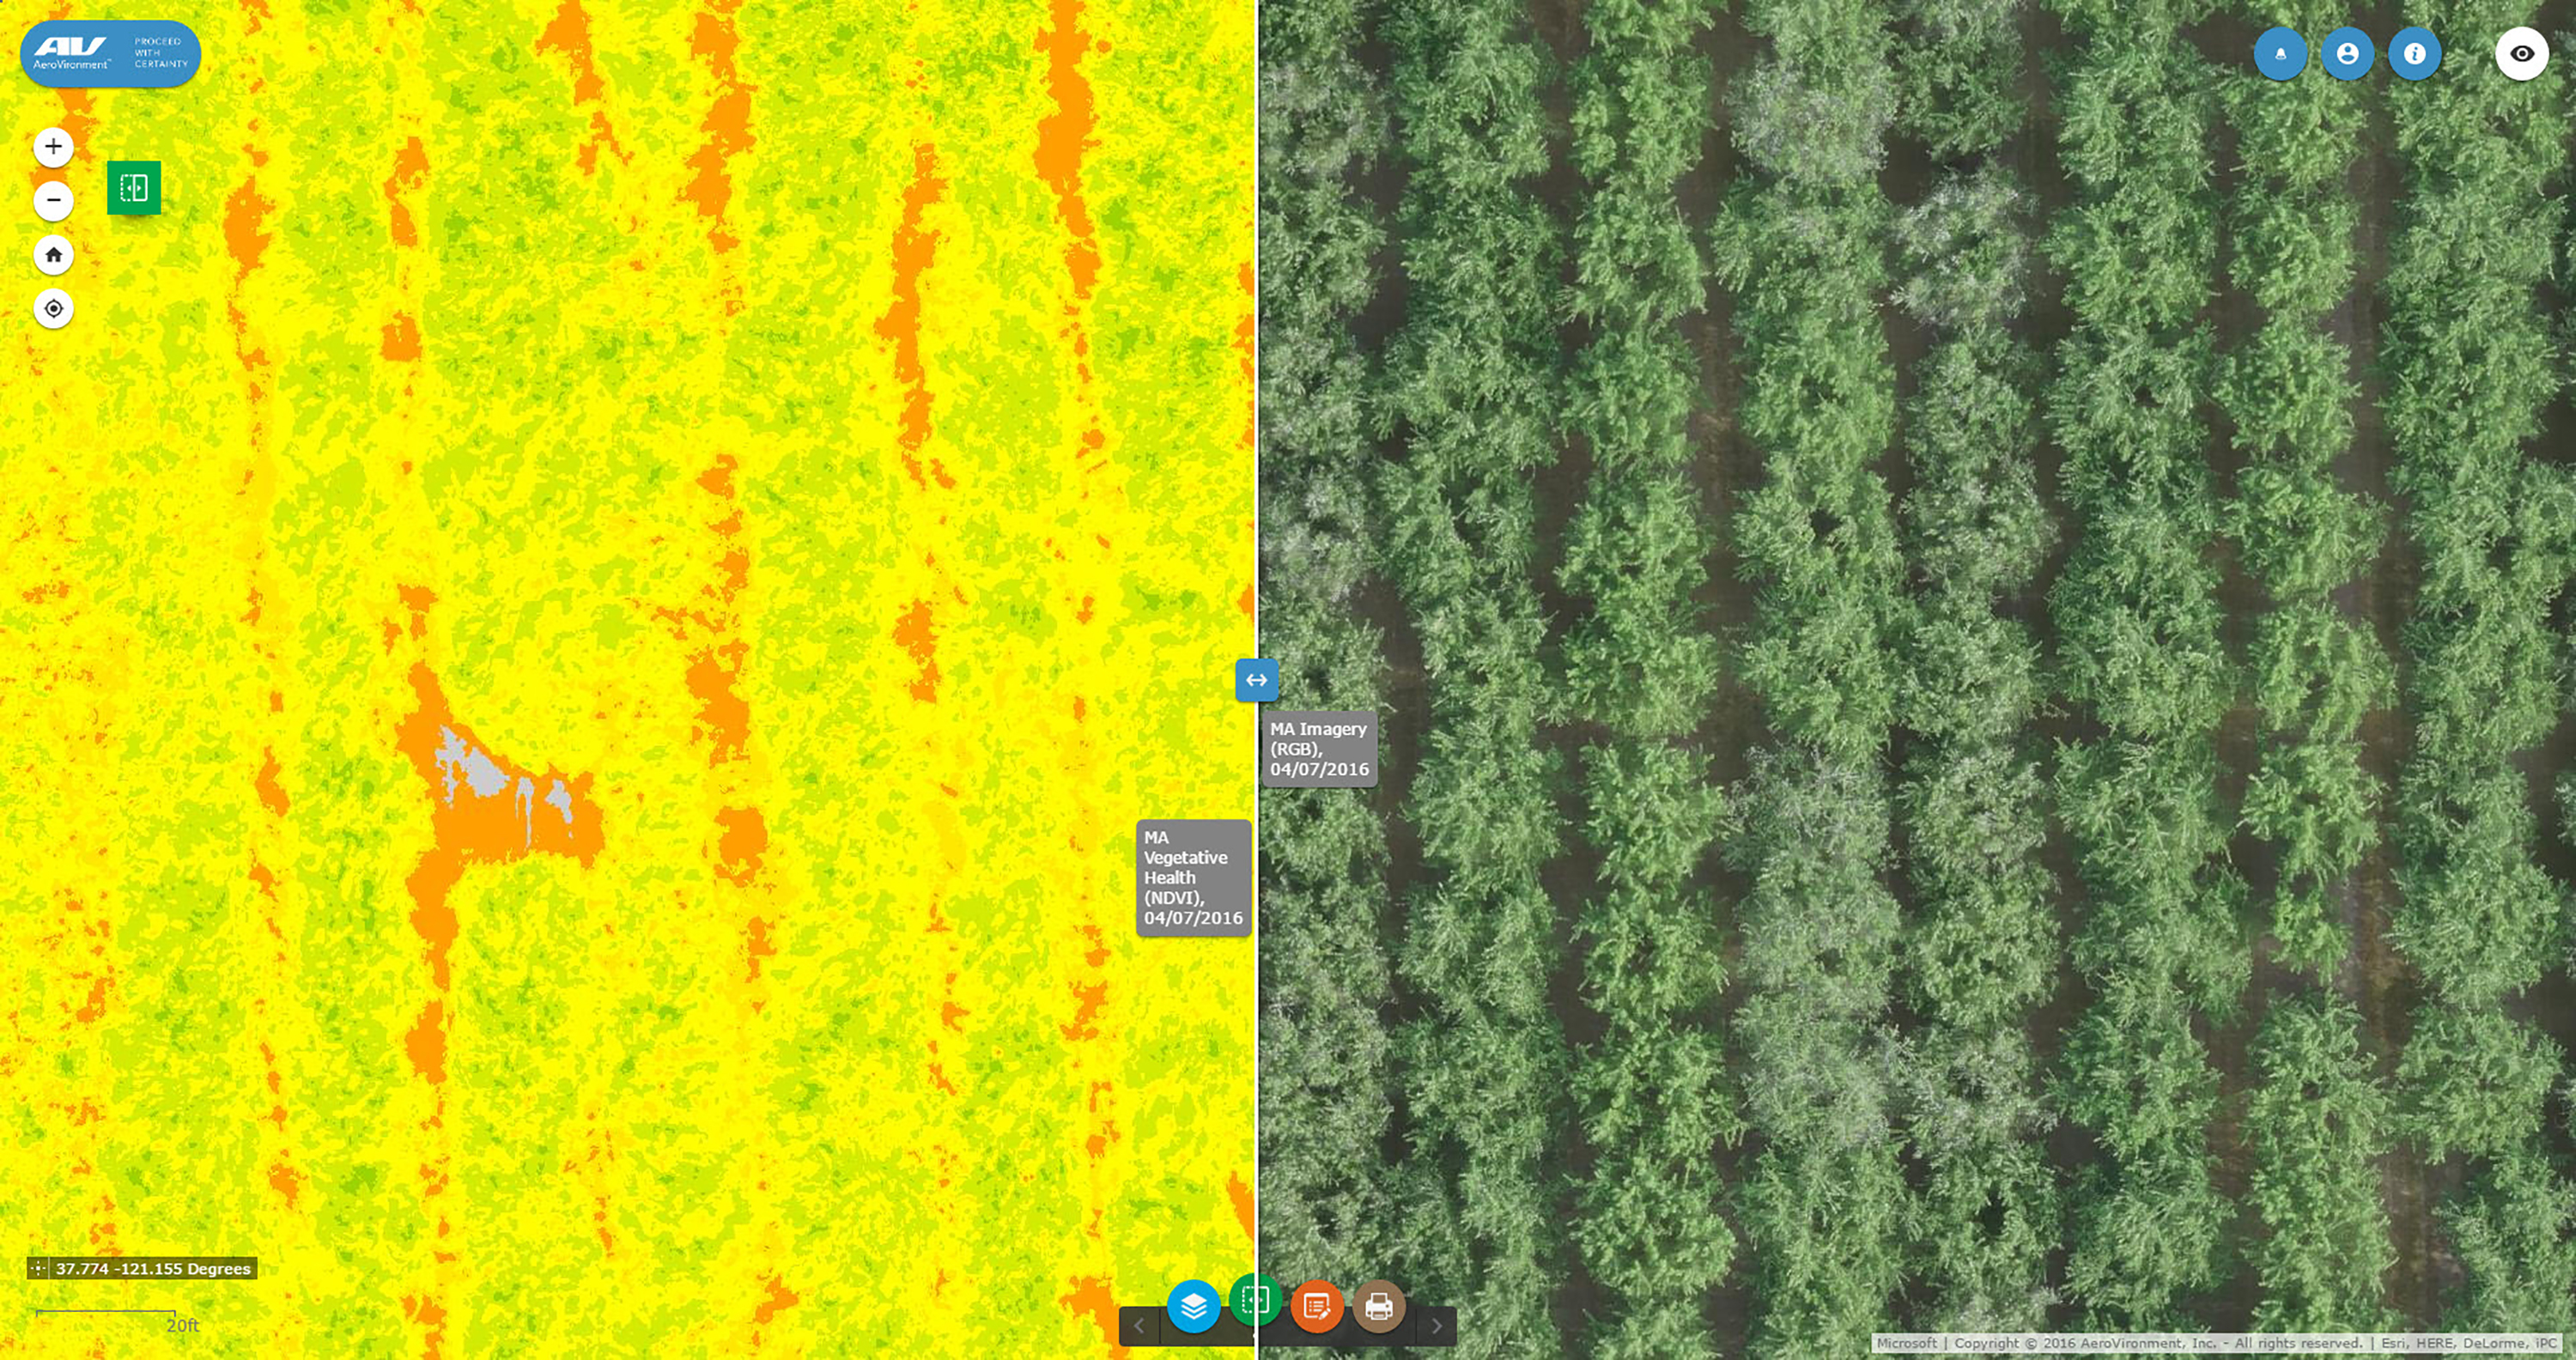 Almond_Swipe_1 Drones Could Help Manage Big Agricultural Commodity in California